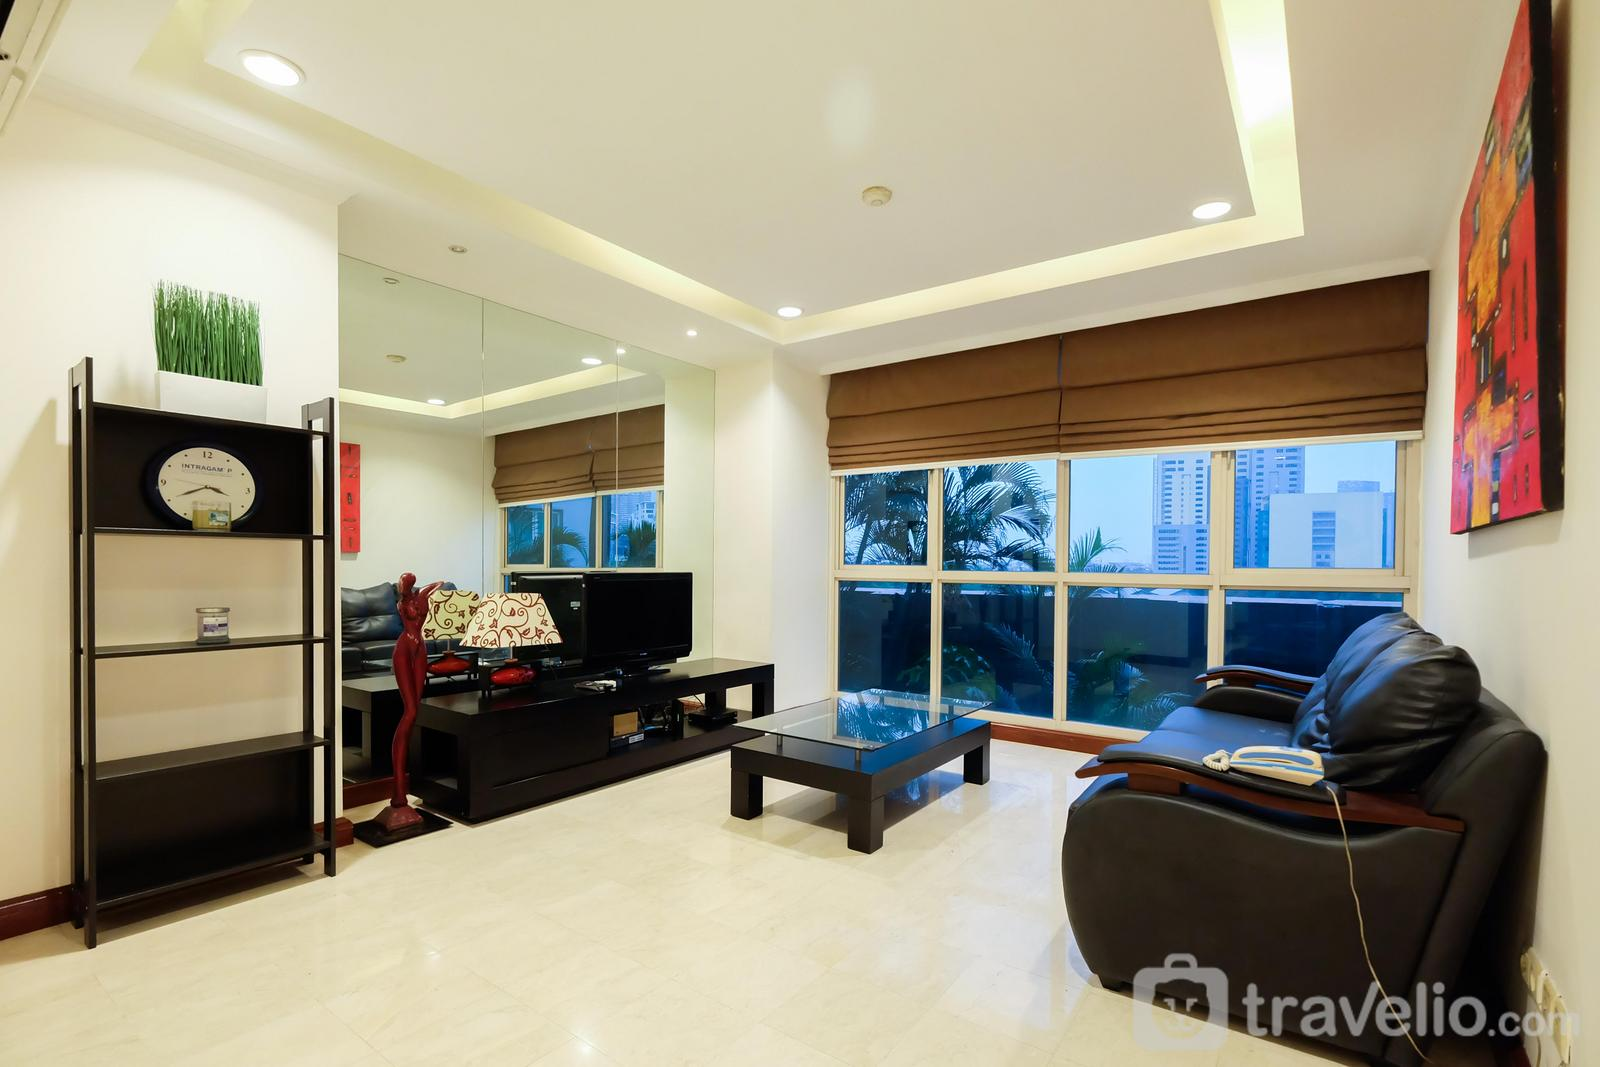 Puri Imperium Apartment - New 2BR Puri Imperium Apartment By Travelio